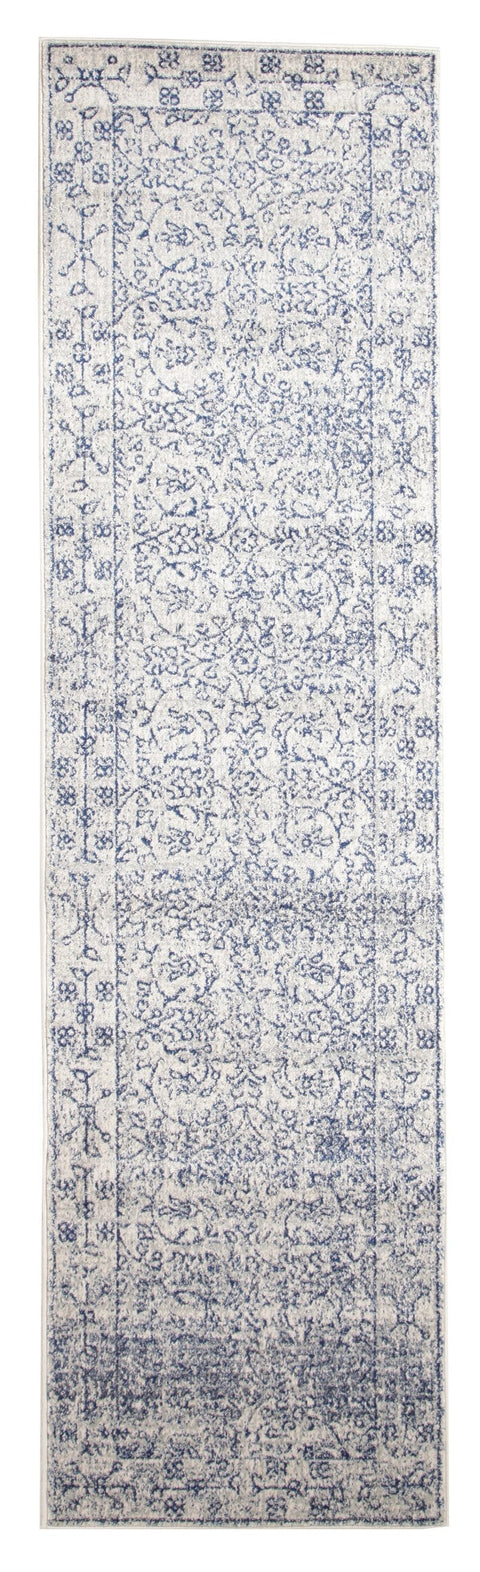 Avila Cobalt Blue Floral Transitional Runner Rug